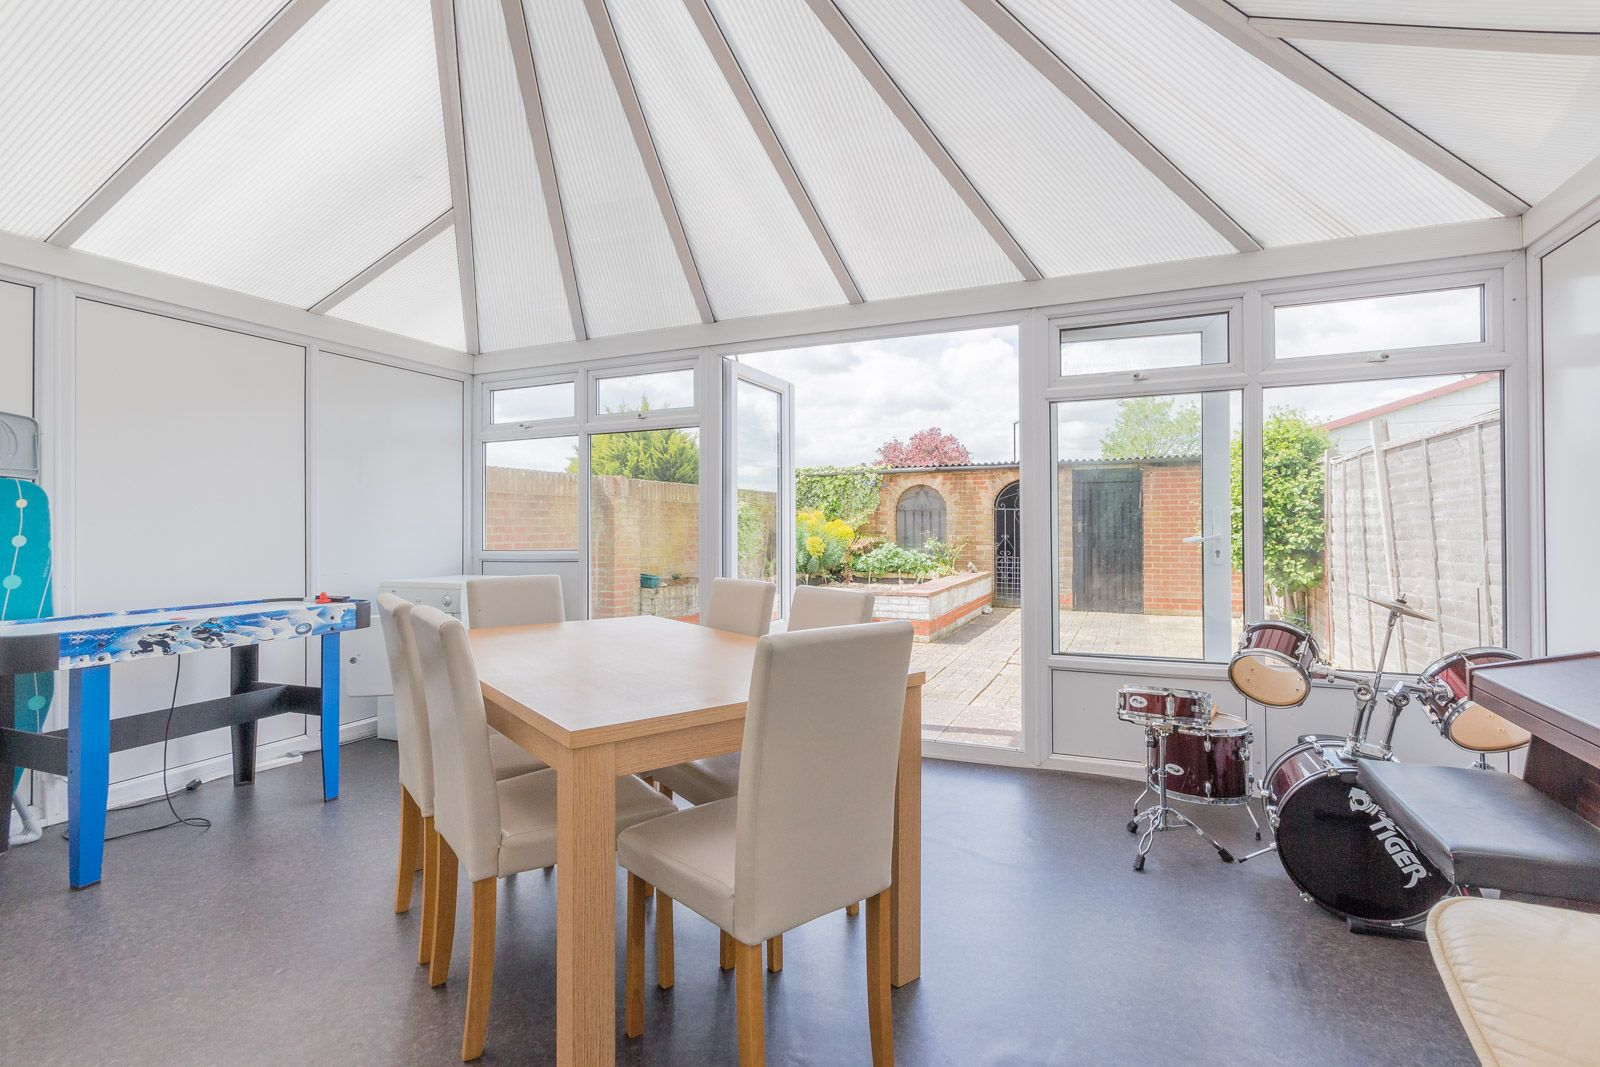 3 bed House to rent in East Preston - Conservatory (Property Image 4)